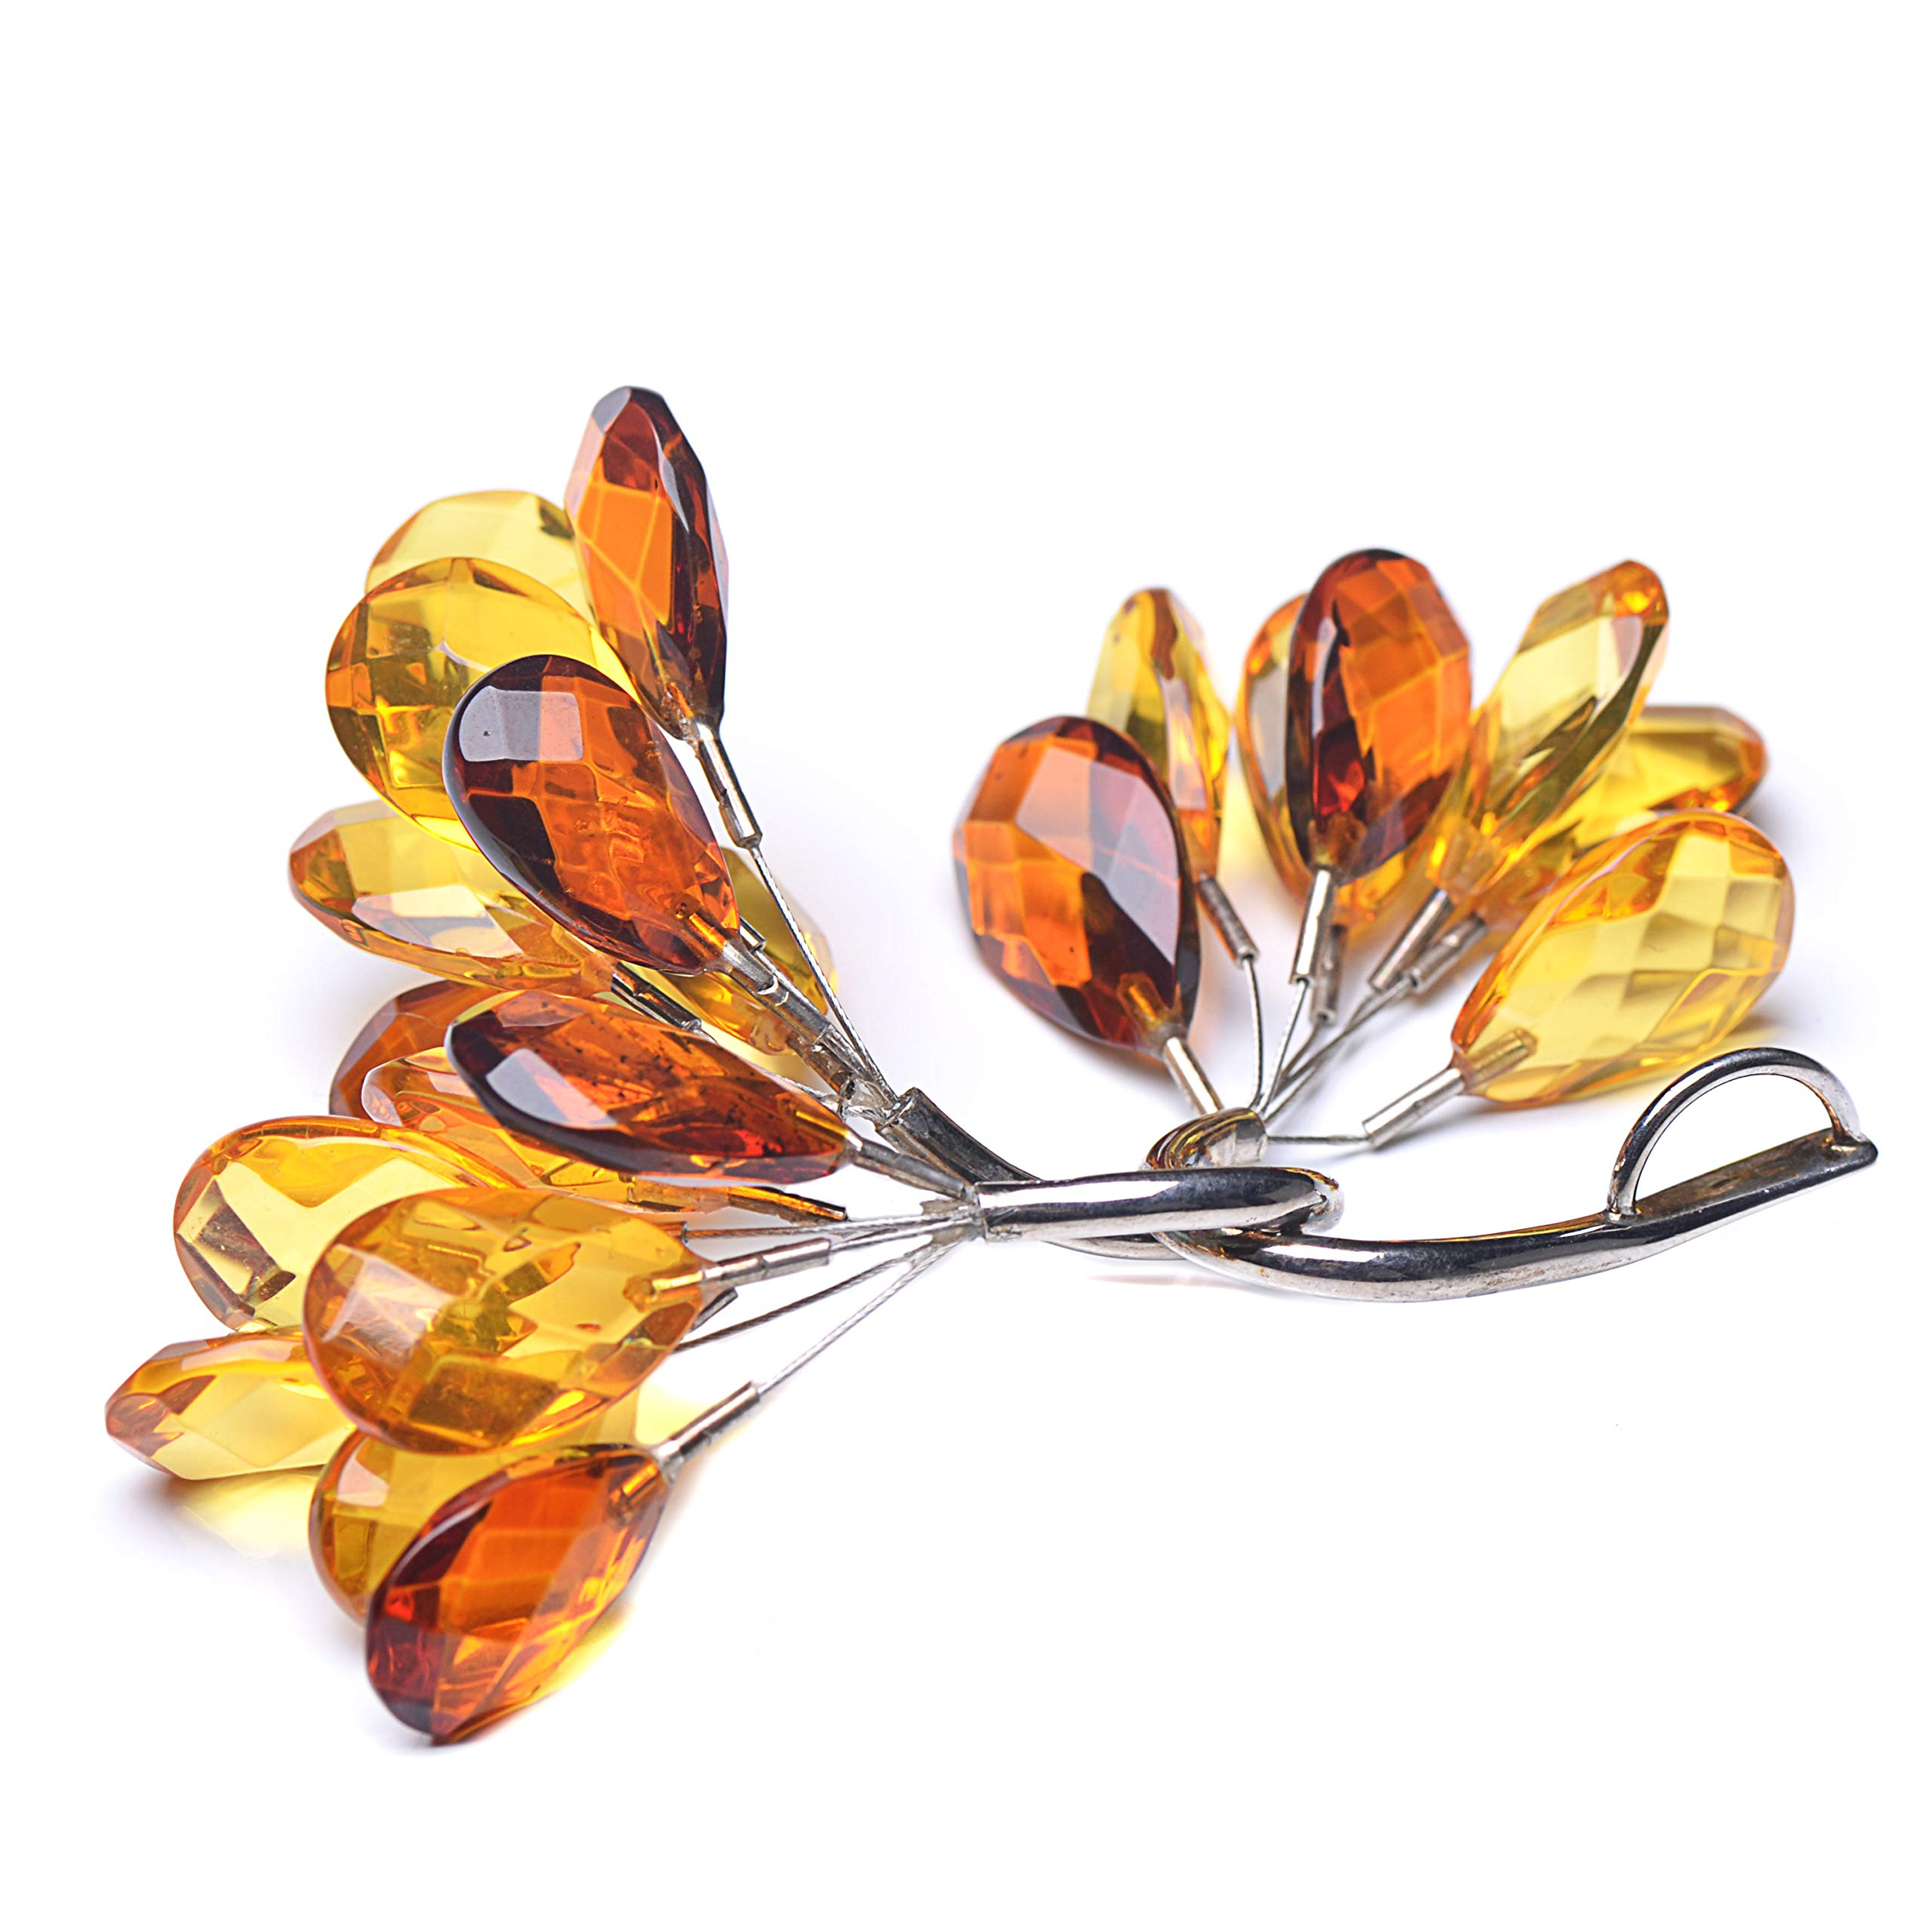 Tree Branch Pendant - Pendant with Amber Leaves - Pendant with Leaves - Colorful Amber Pendant by Genuine Amber